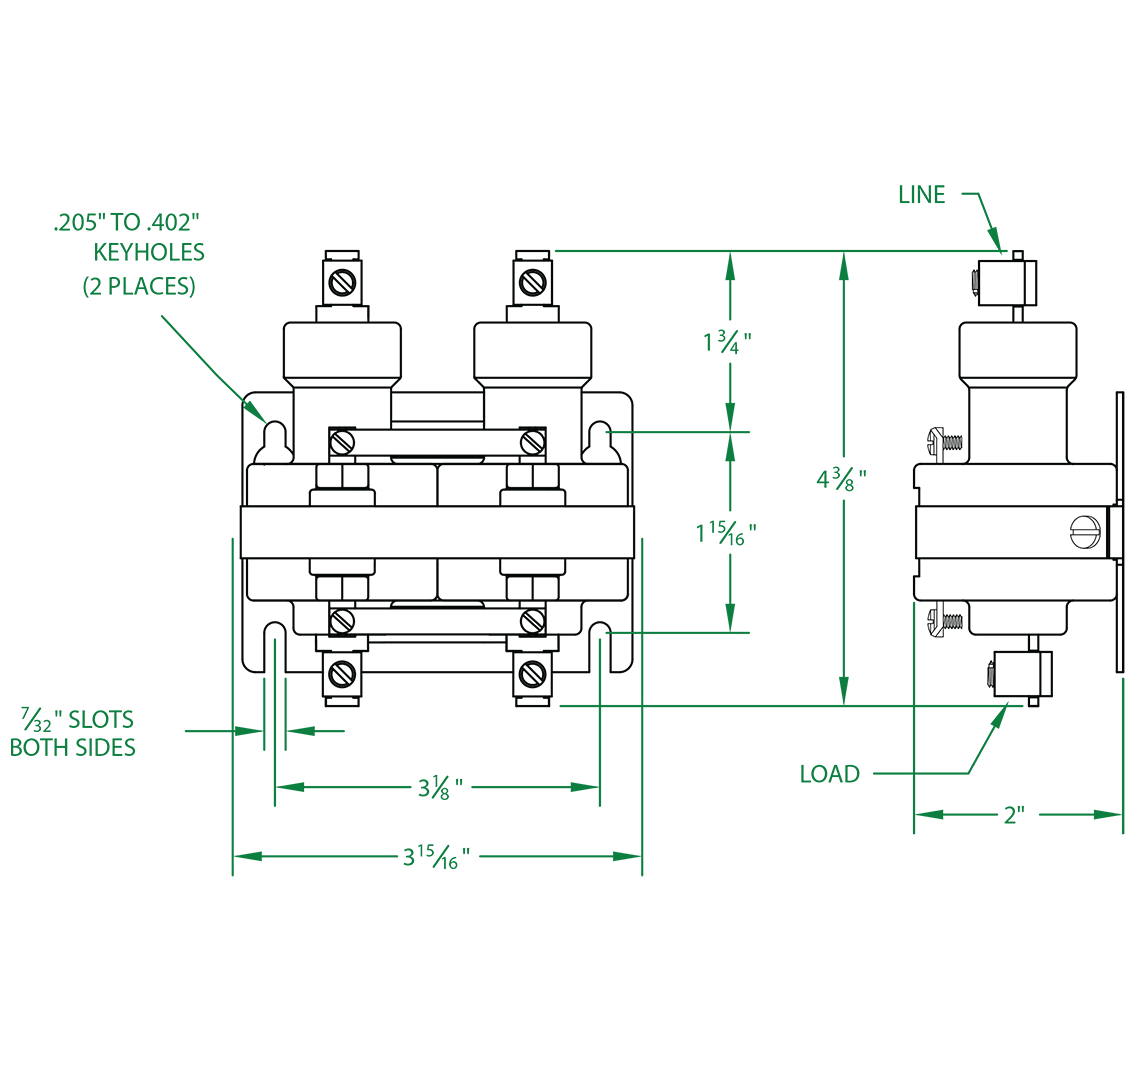 Mercury Relay - Hg Relay - Normally Open - 2 Pole - 35 AMP - 120 VAC Coil | Mercury Contactor Wiring Diagram |  | Mercury Displacement Industries